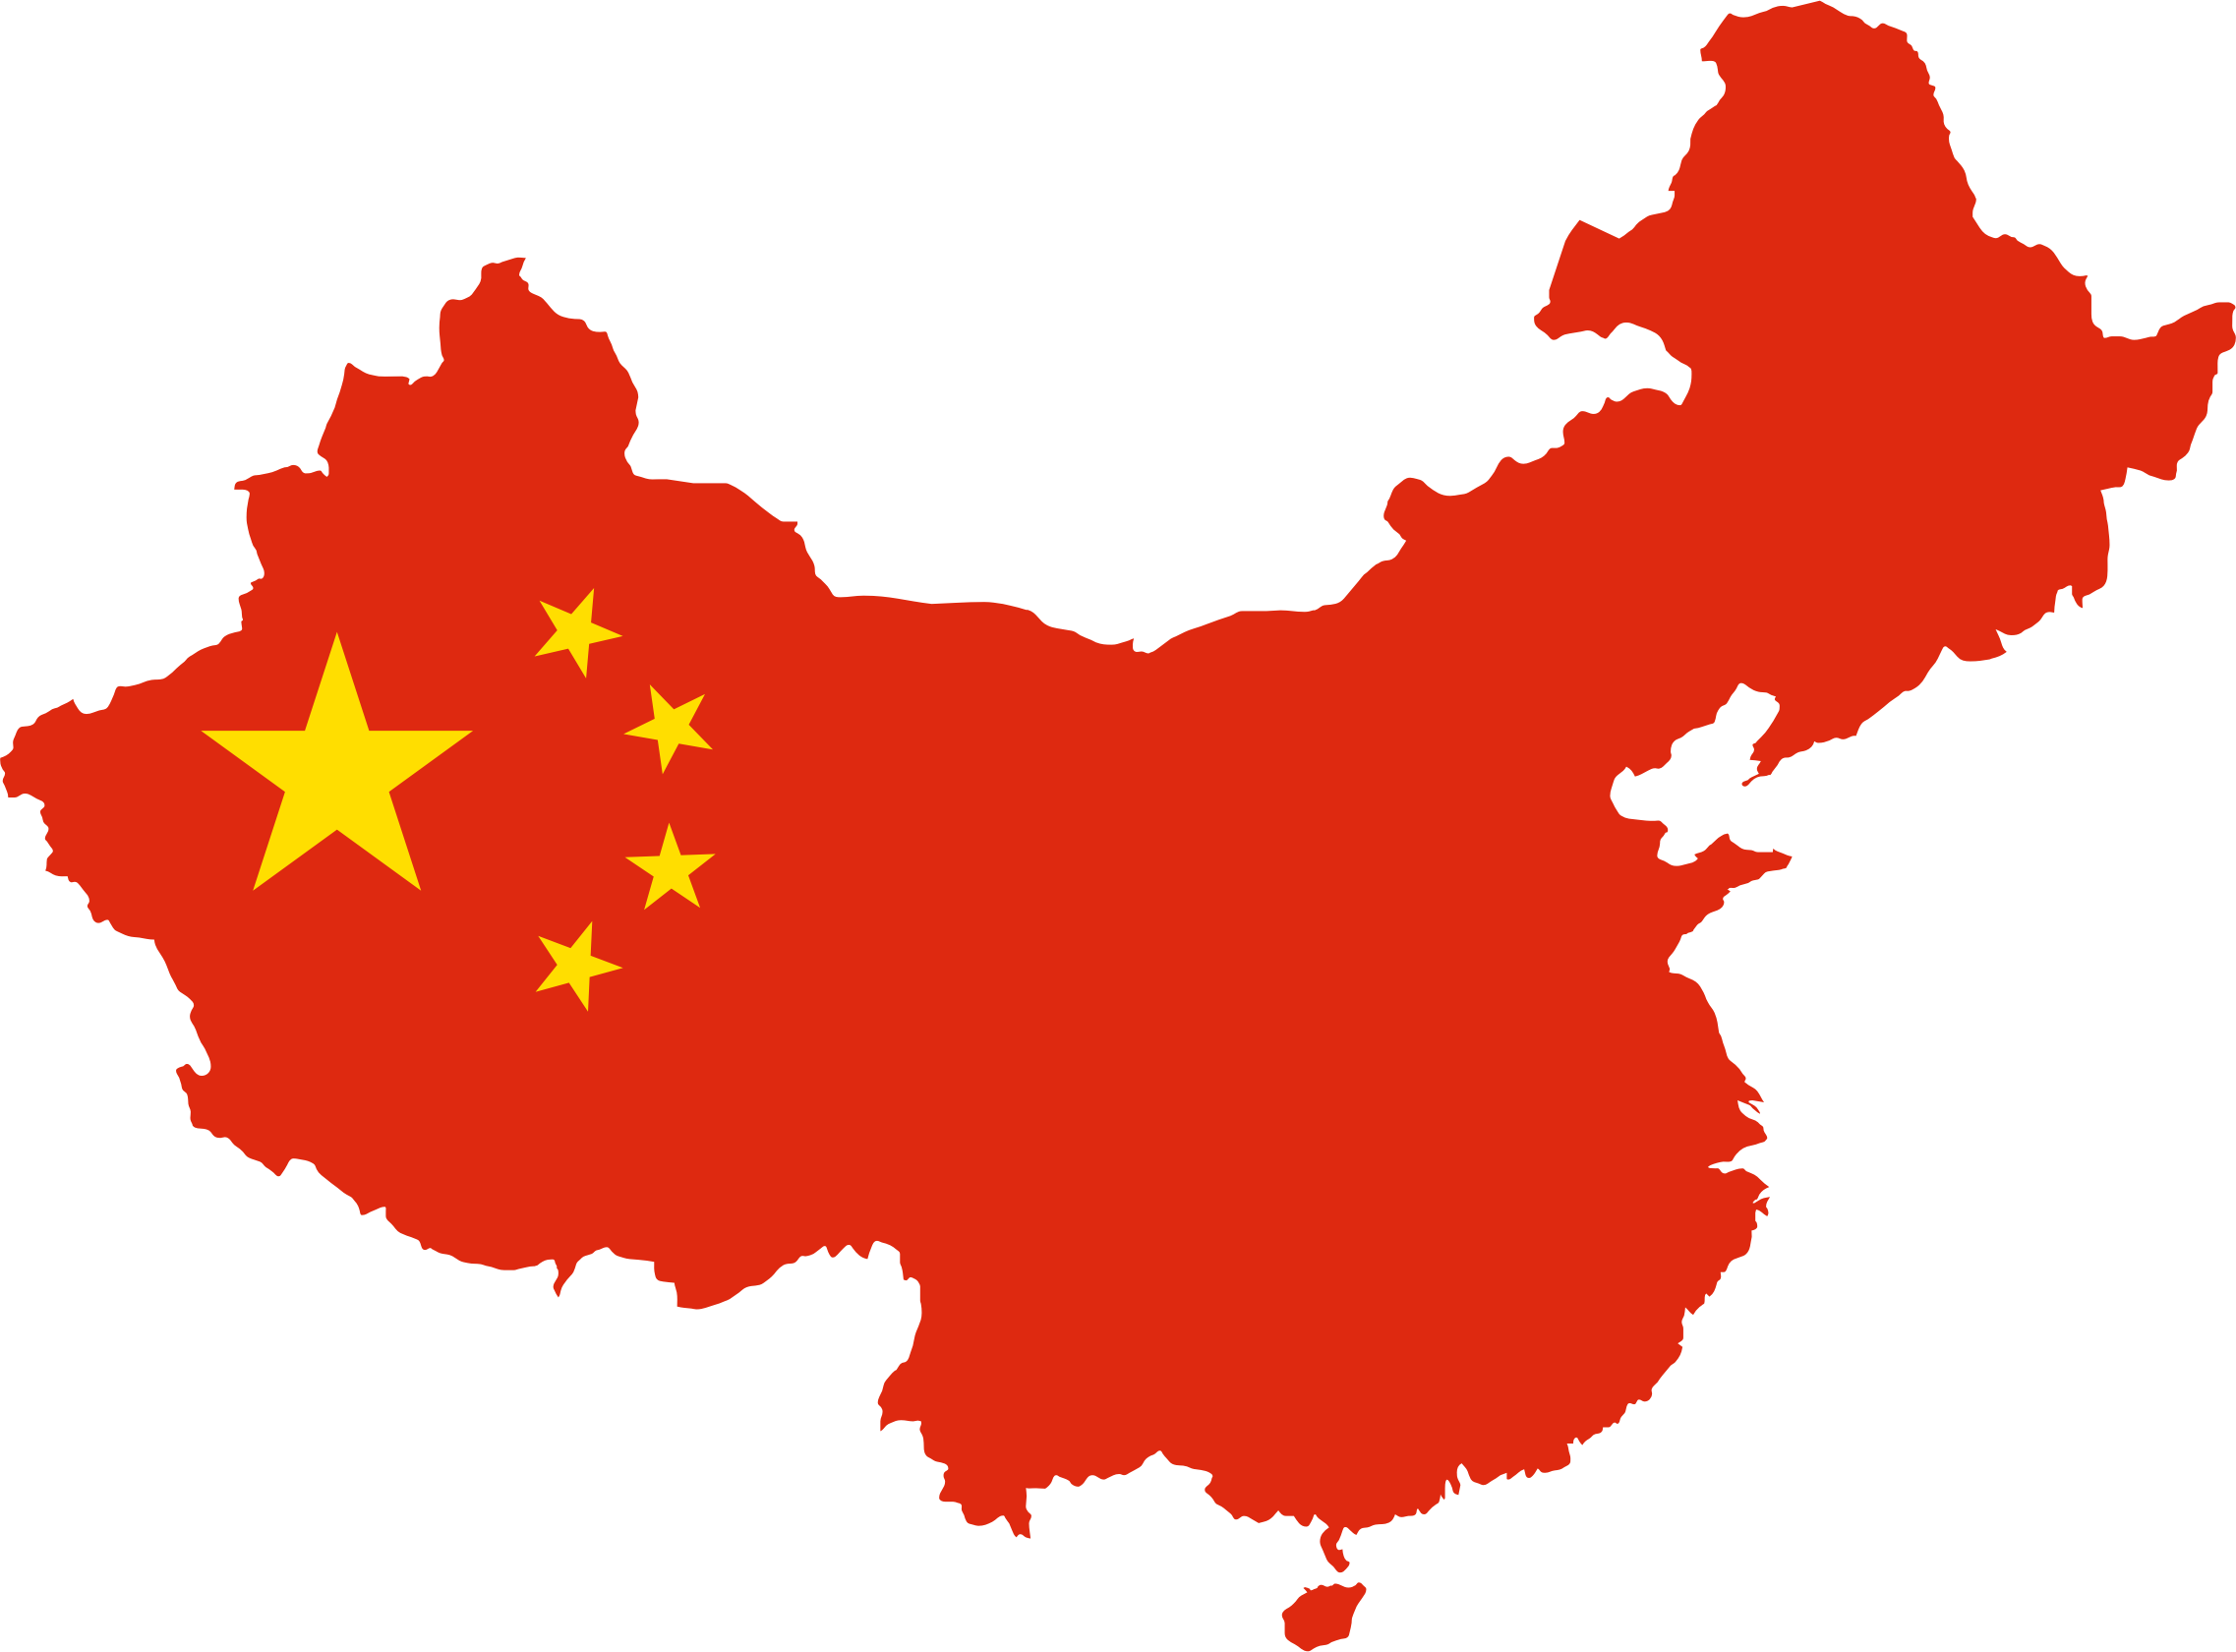 China Clipart Map China Map Transparent Free For Download On Webstockreview 2020